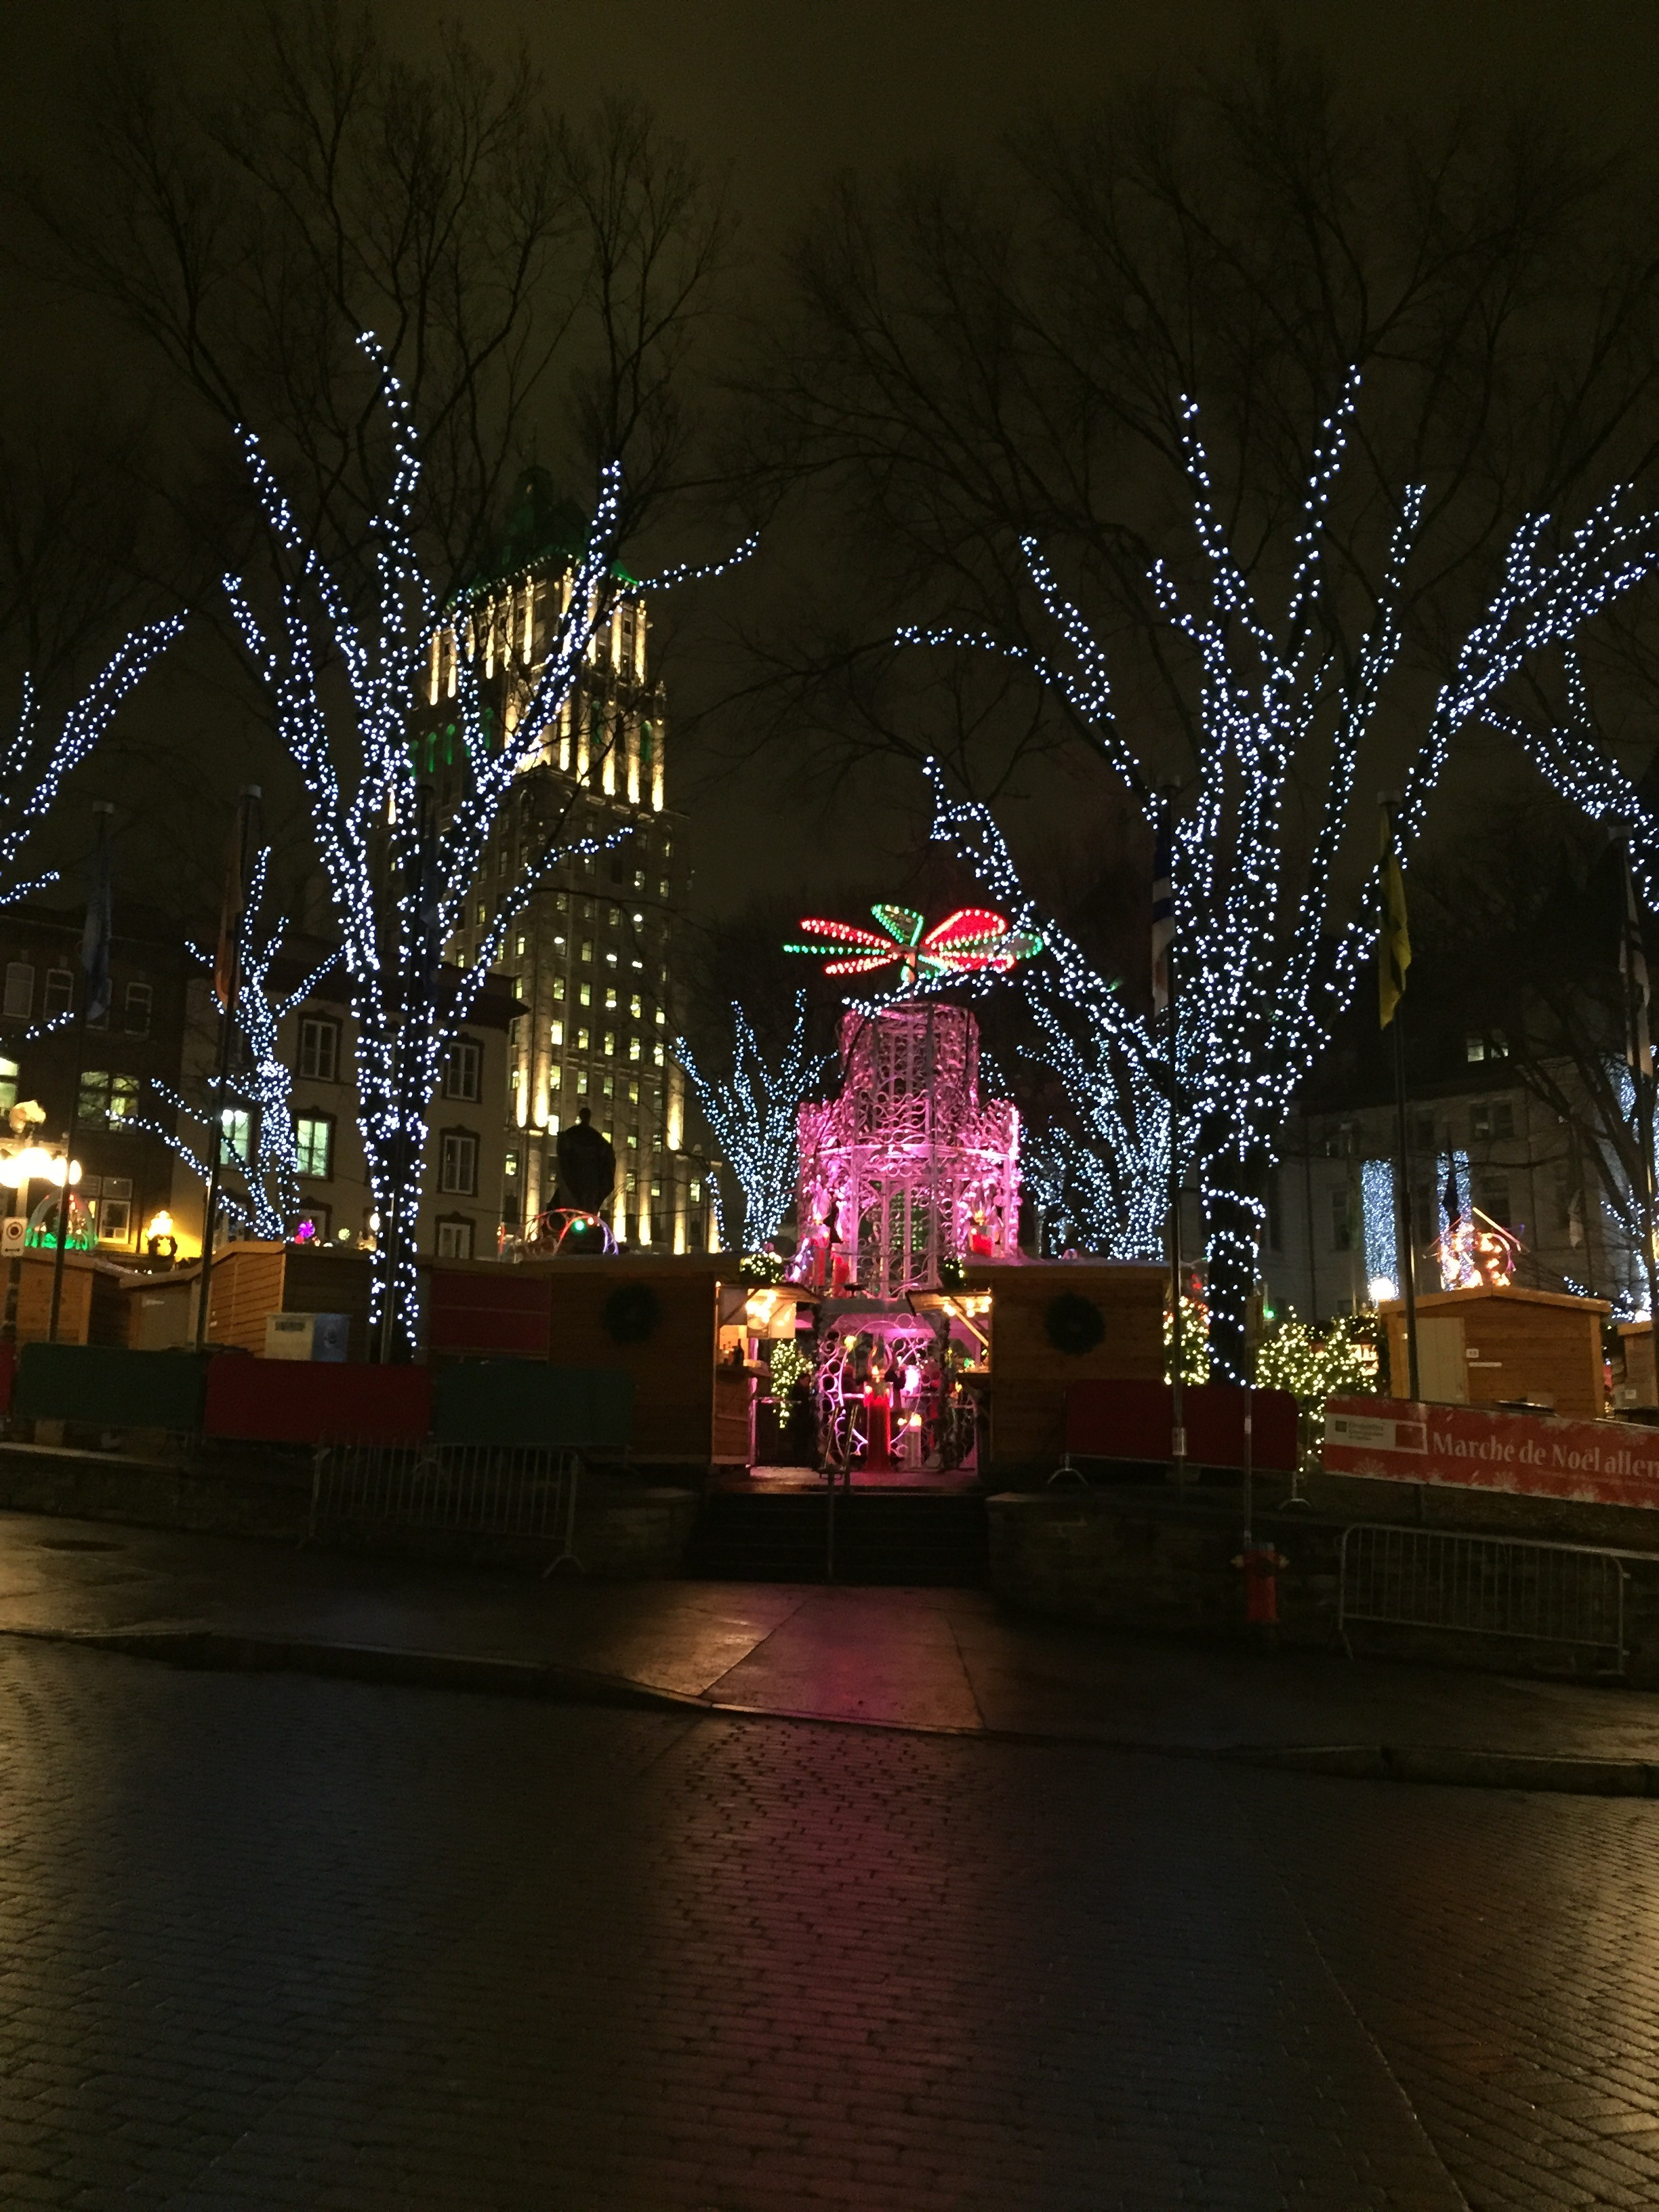 Quebec City German Christmas Market is resplendent with glittering lights, mulled wine and wood-burning fireplaces.